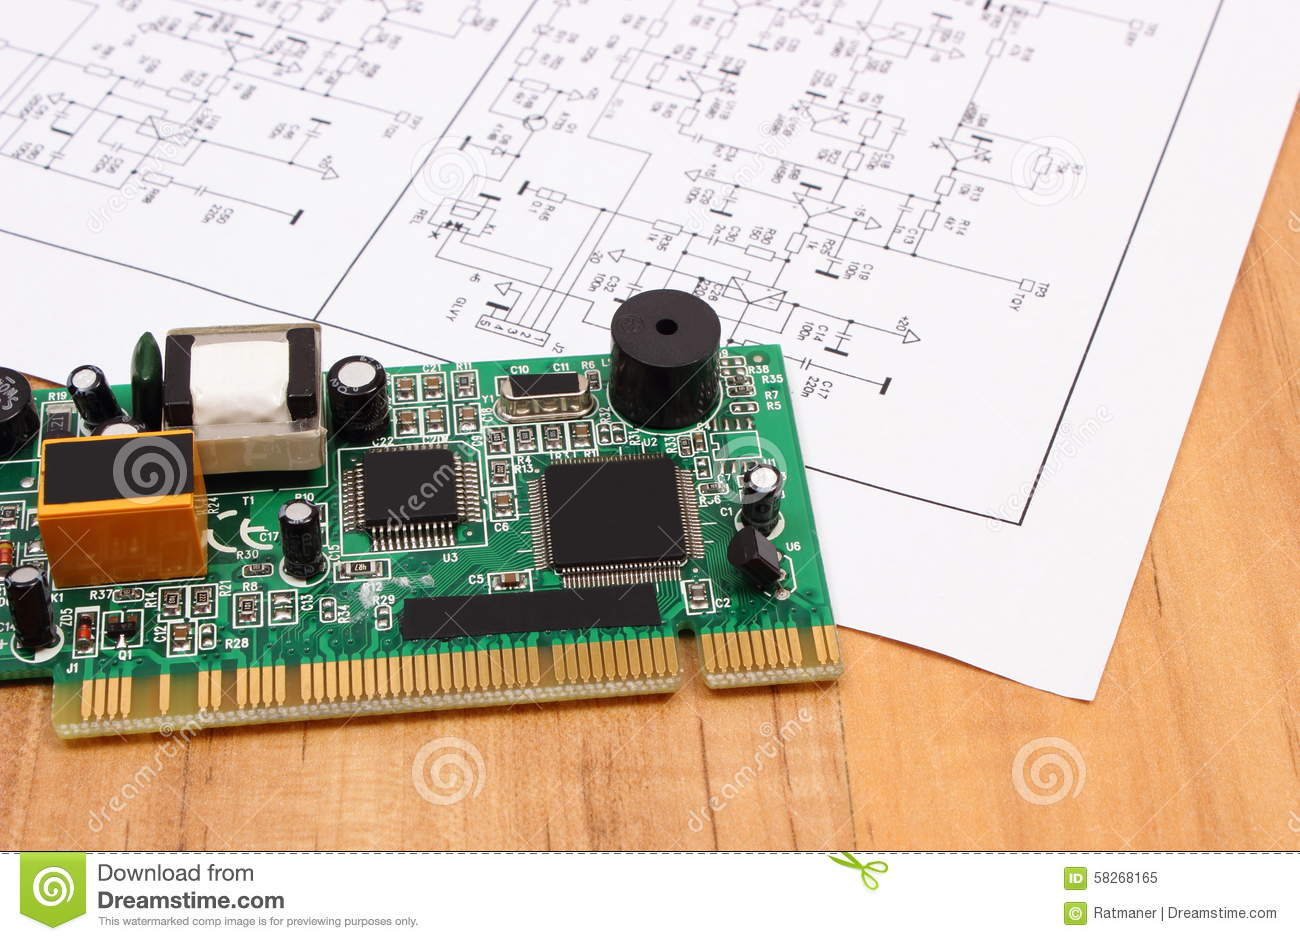 printed circuit board and diagram of electronics, technology stock